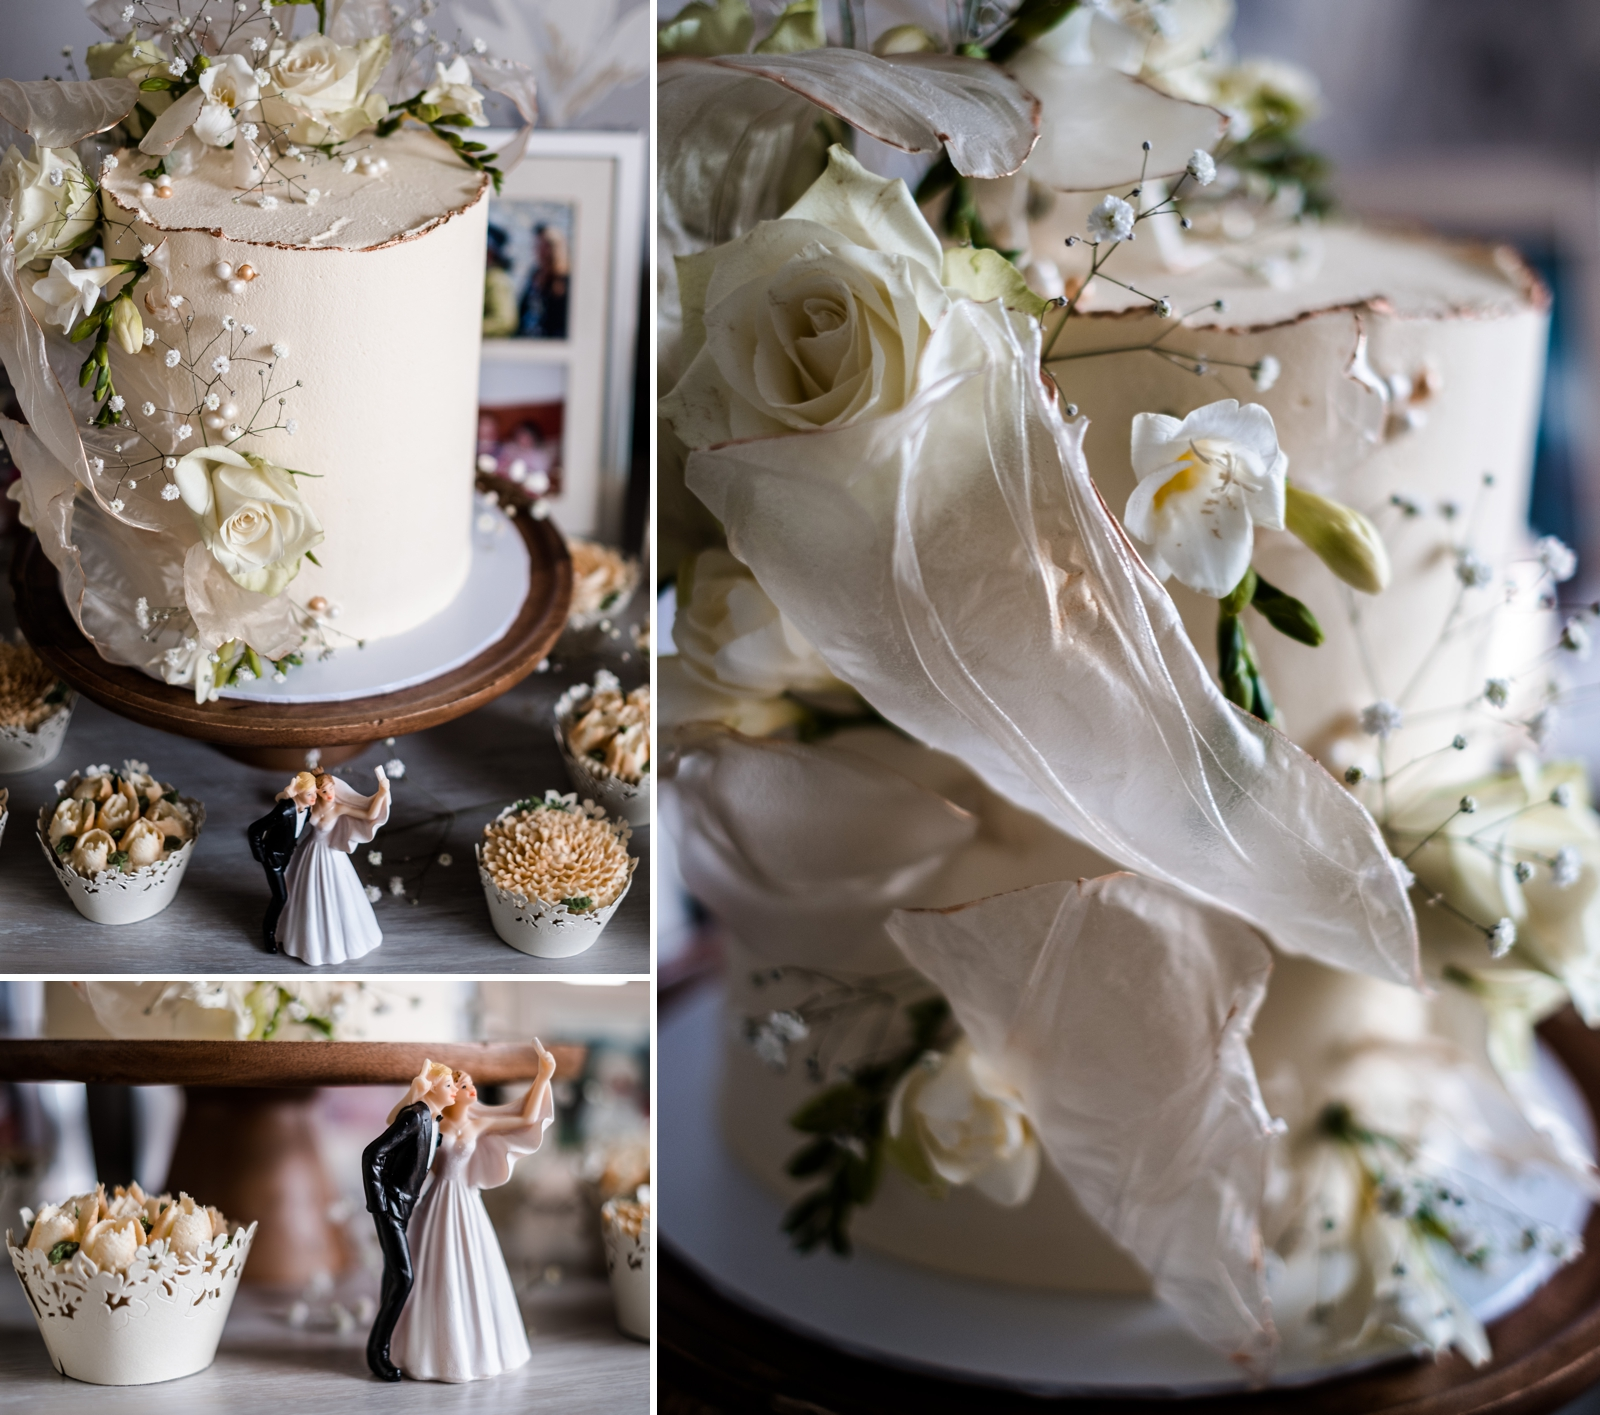 Home wedding cake reception in South Wales